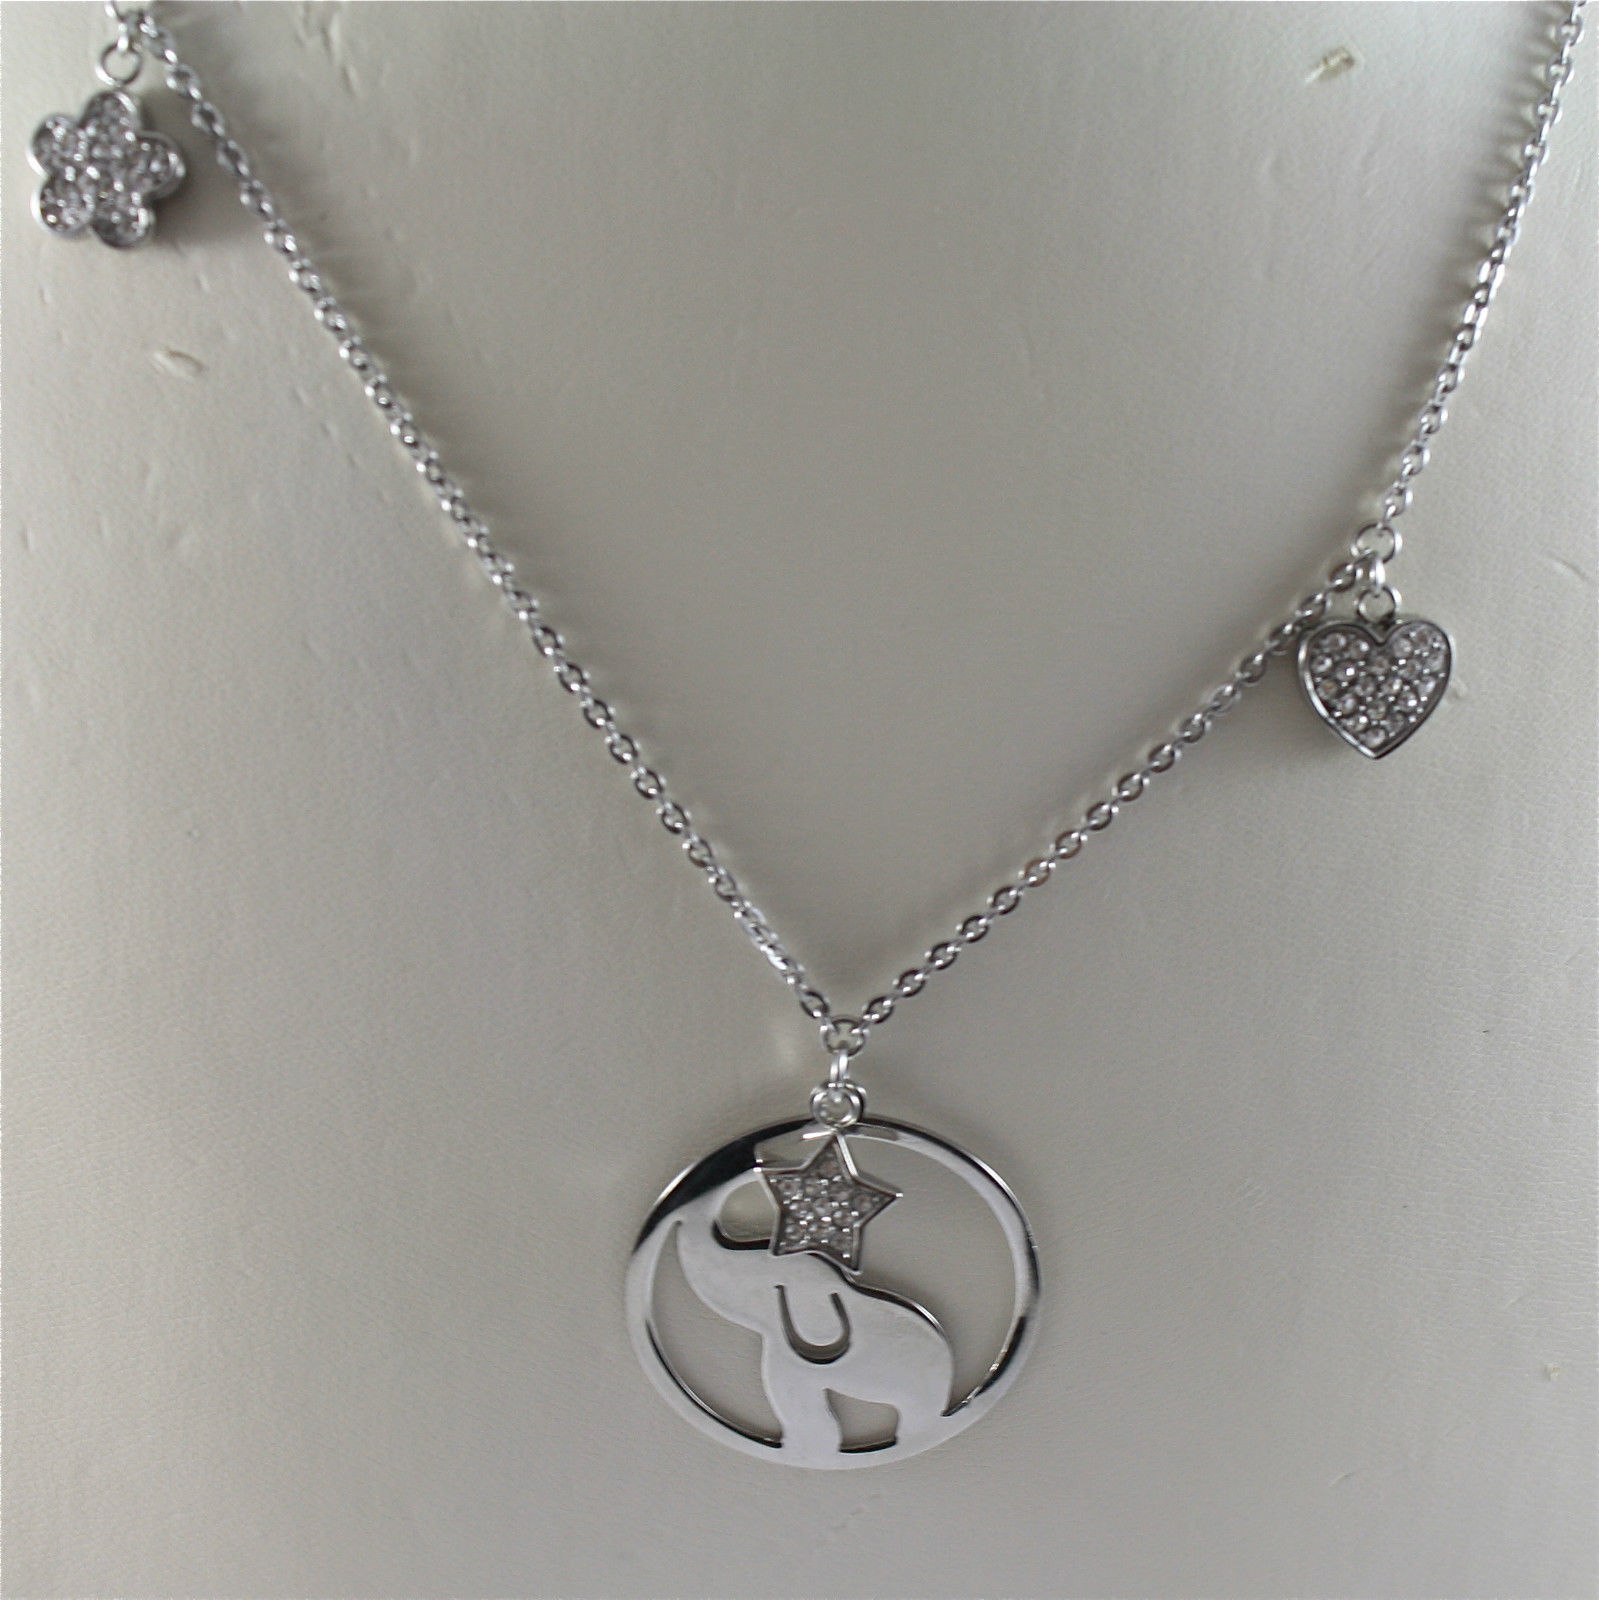 S'AGAPO' NECKLACE, 316L STEEL, ELEPHANT AND STAR, CHARMS, FACETED CRYSTALS.